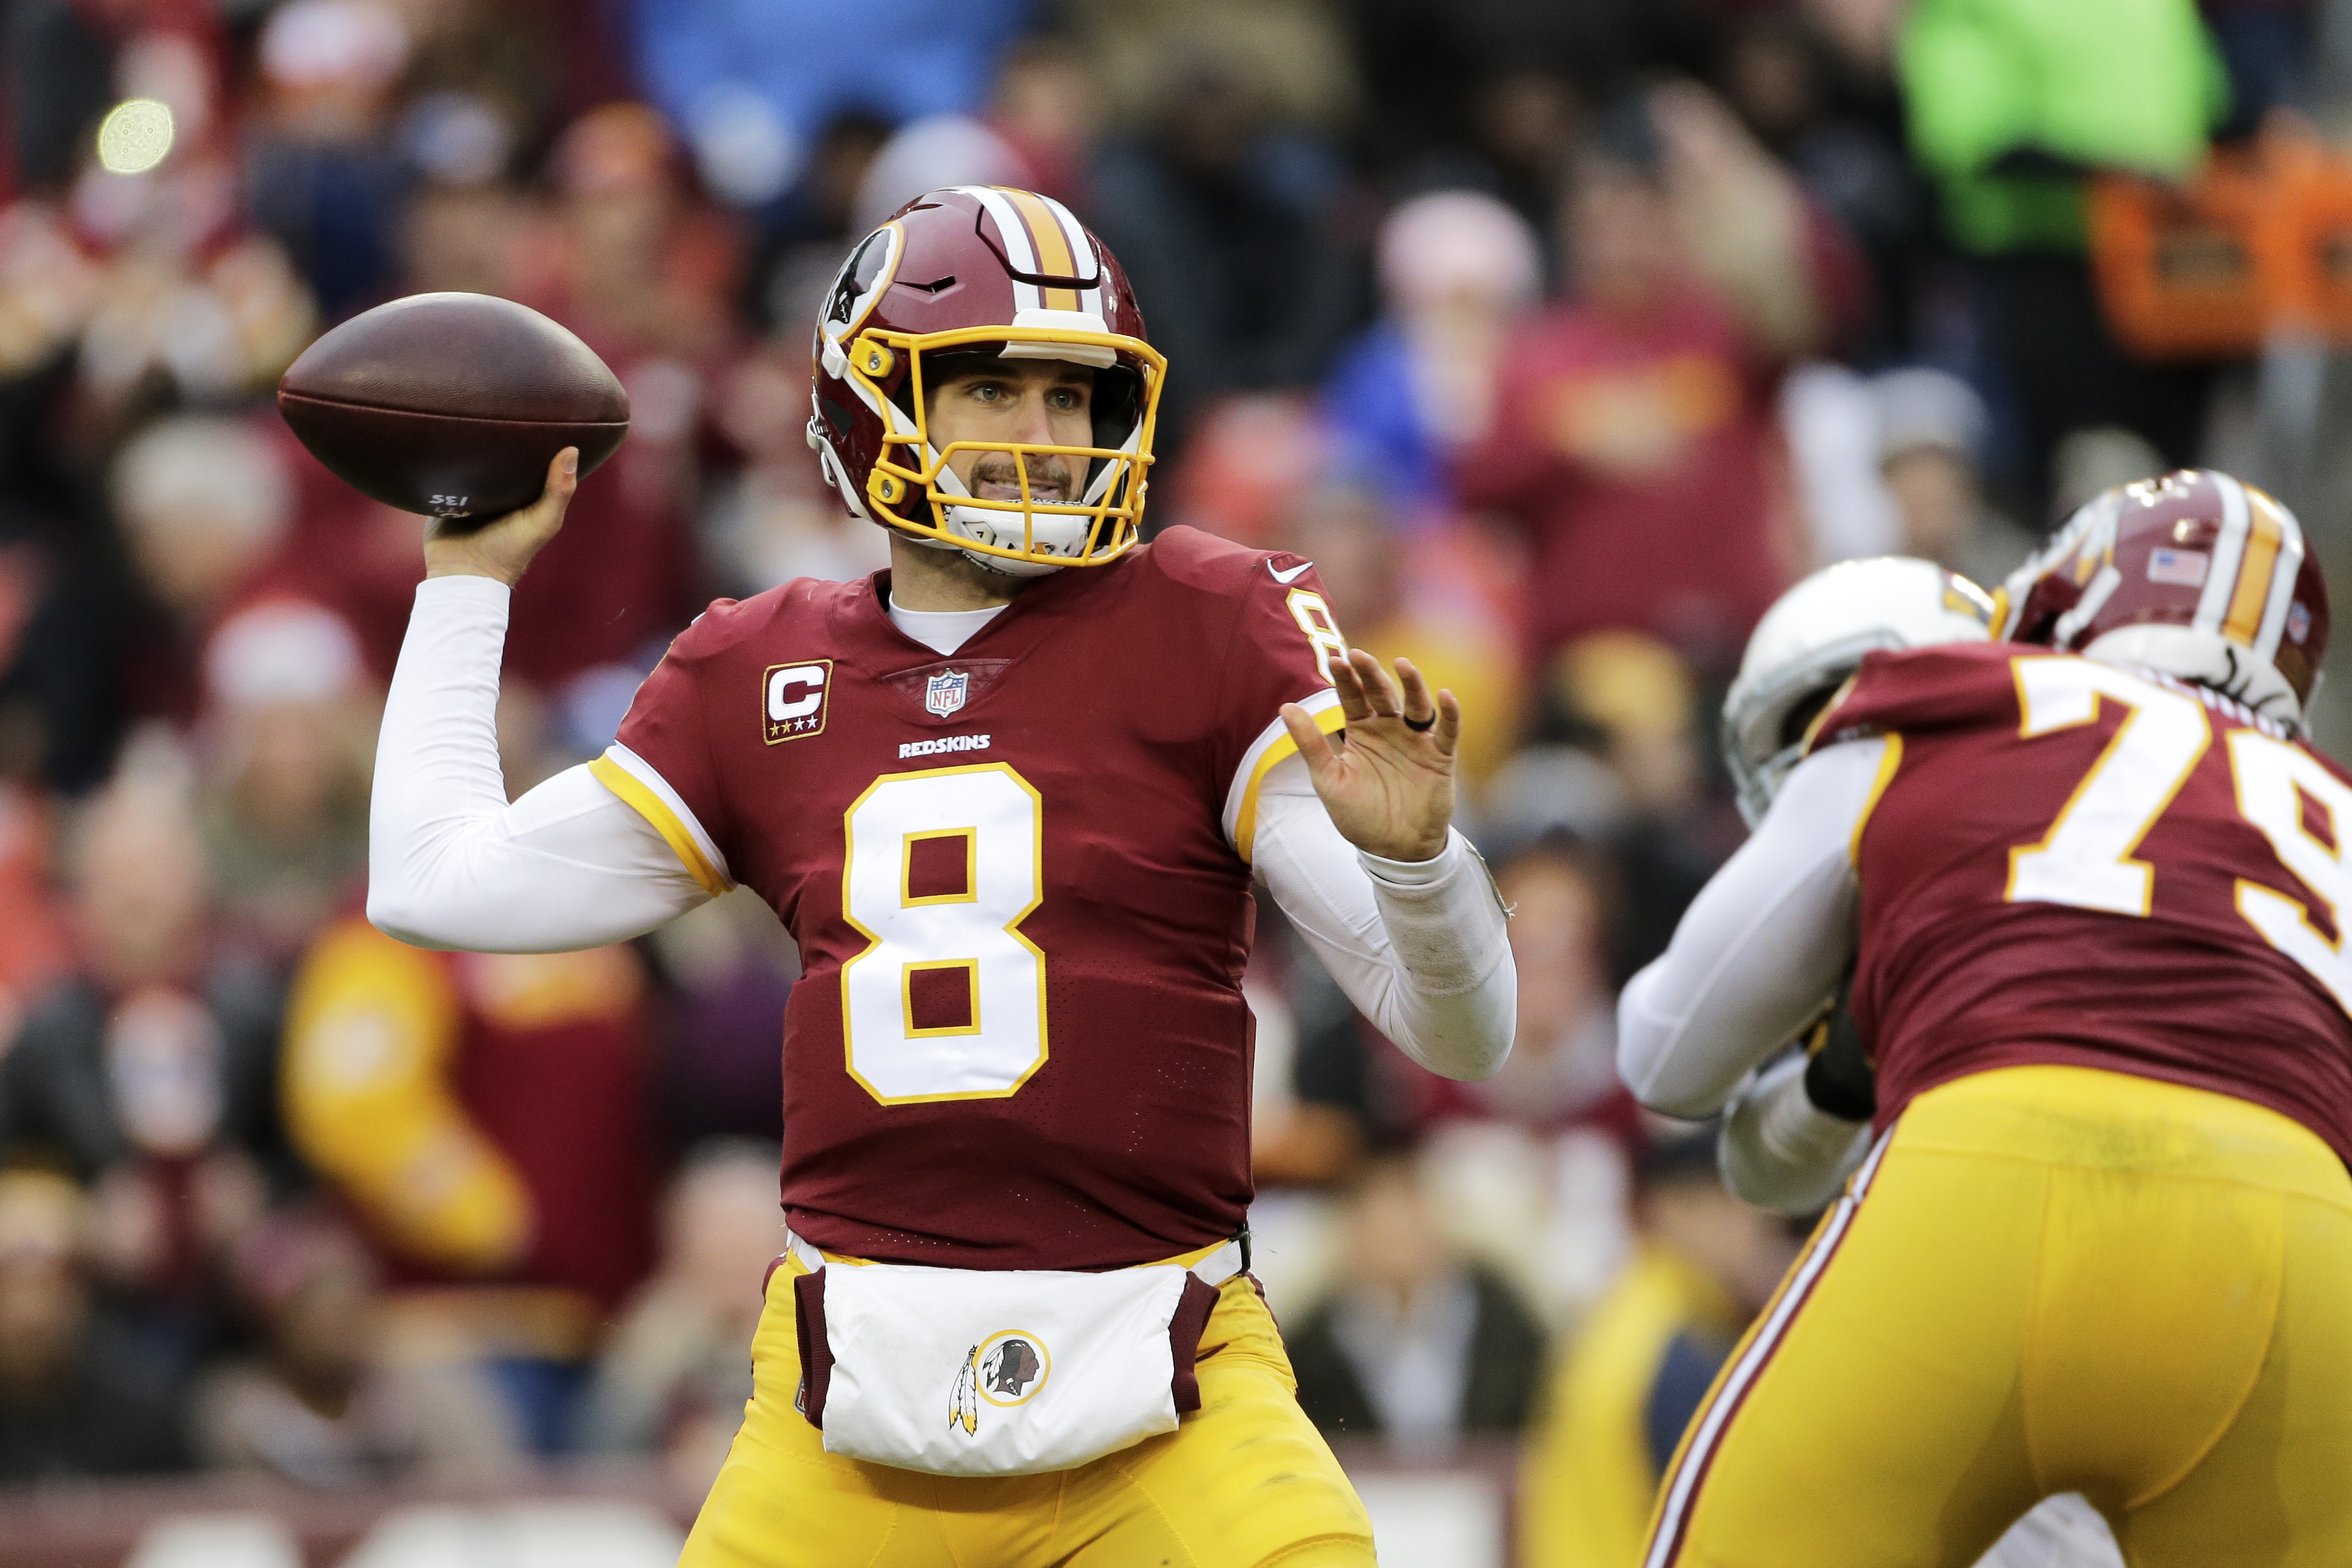 Washington Redskins quarterback Kirk Cousins (8) throws the ball during an NFL football game against the Arizona Cardinals, Sunday, Dec. 17, 2017, in Landover, Md. (AP Photo/Mark Tenally)